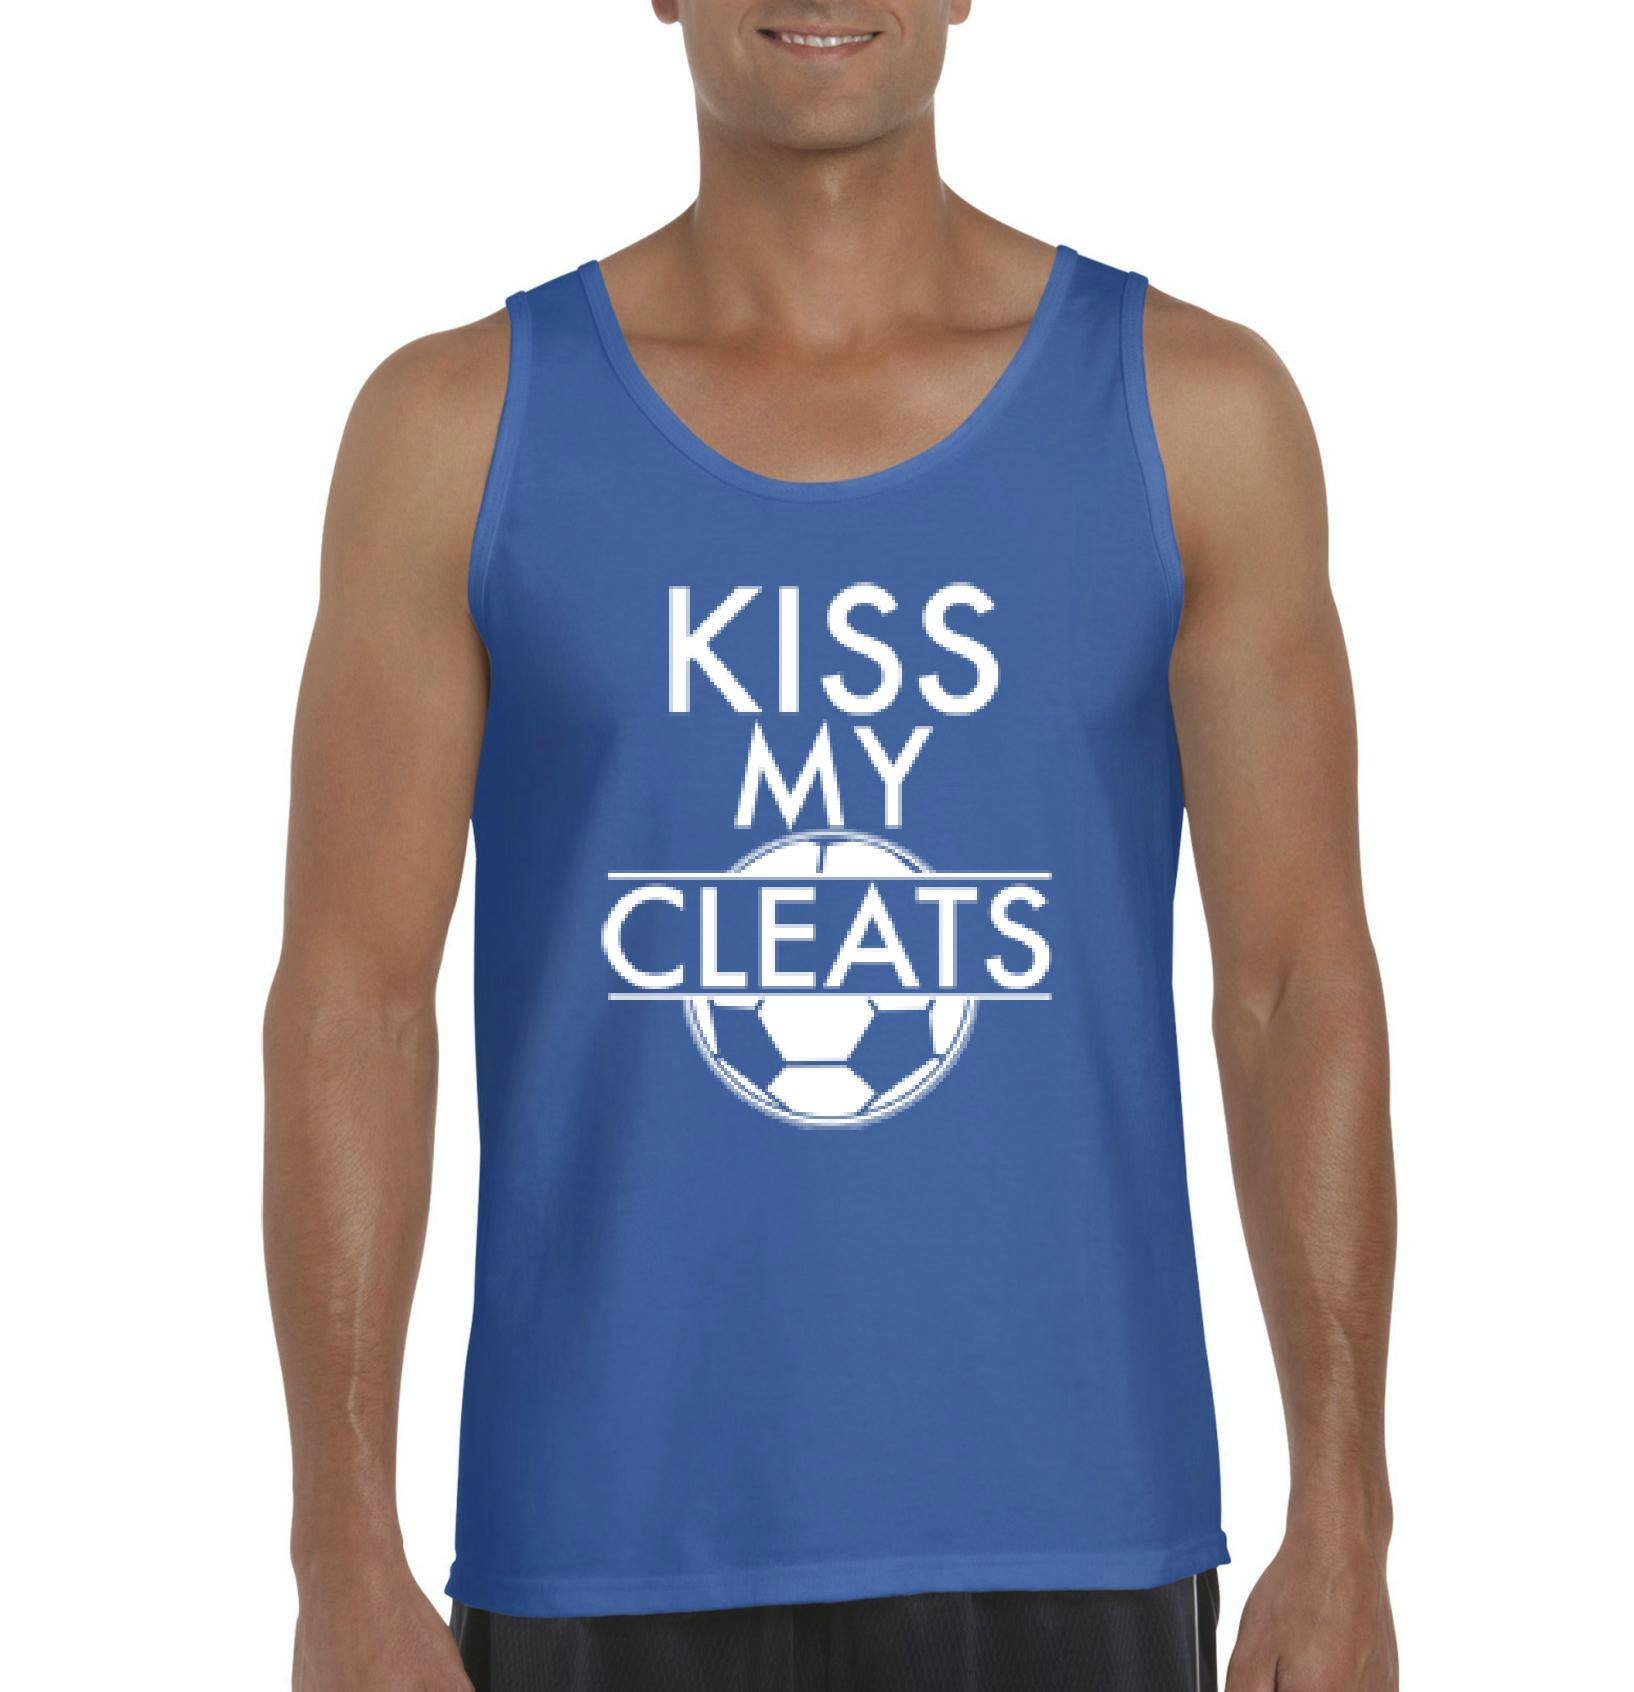 J_H_I Kiss My Cleats Soccer Ball Match w Soccer Shoes Cleats Soccer Games Mens Tanks